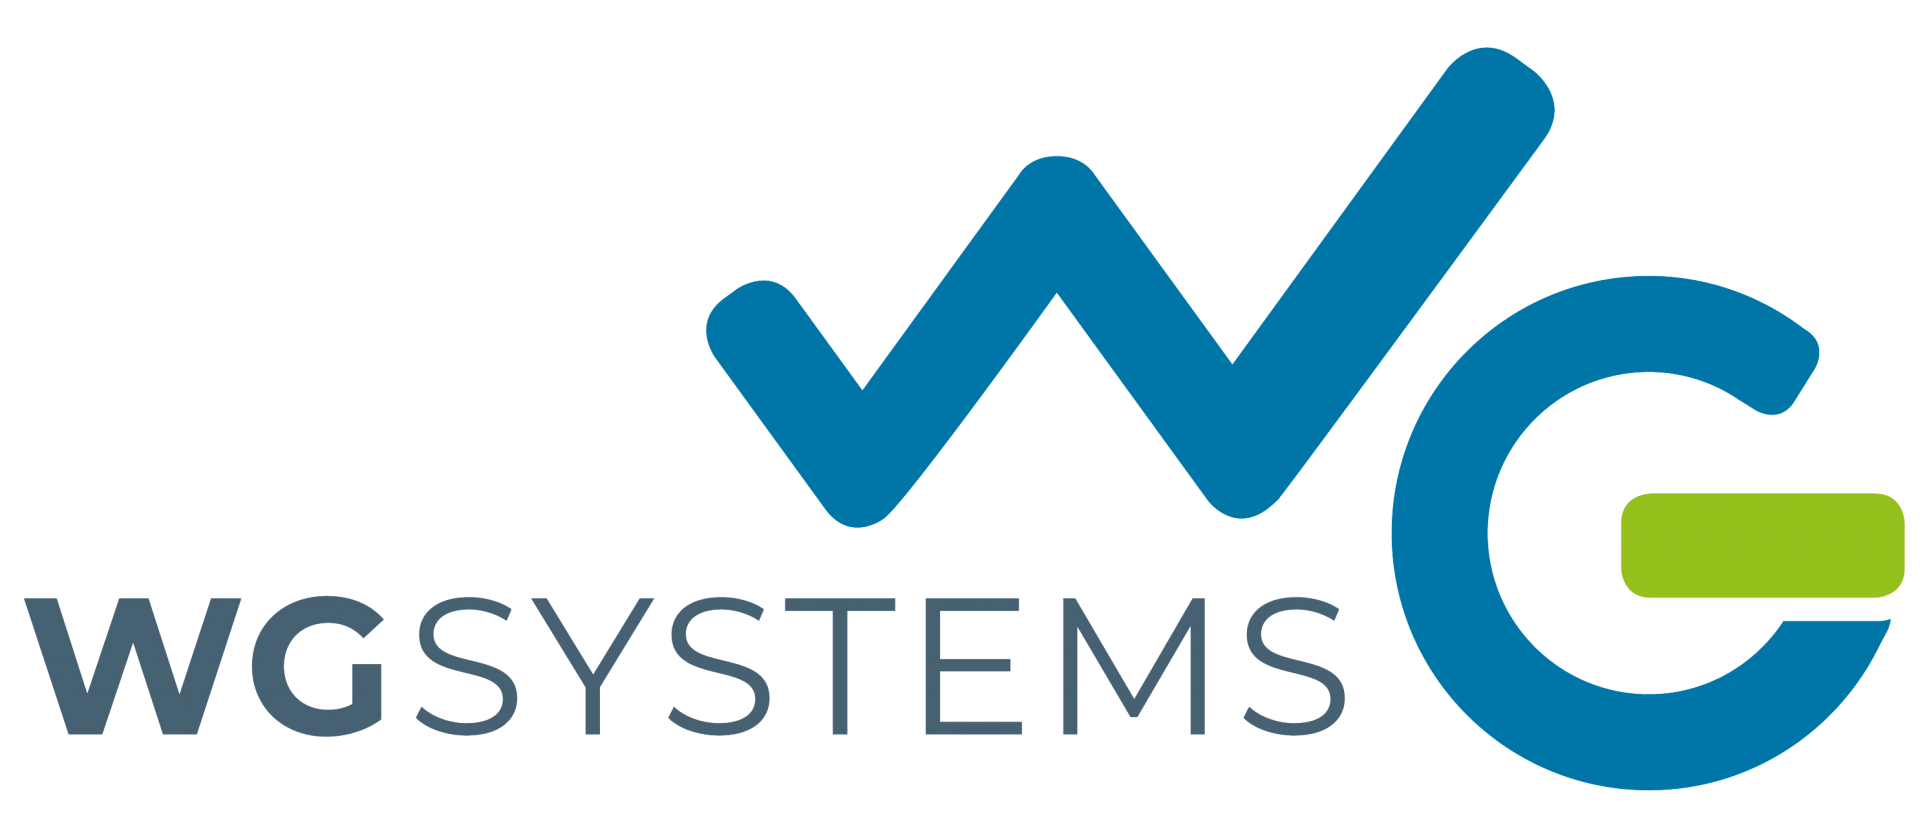 WG Systems